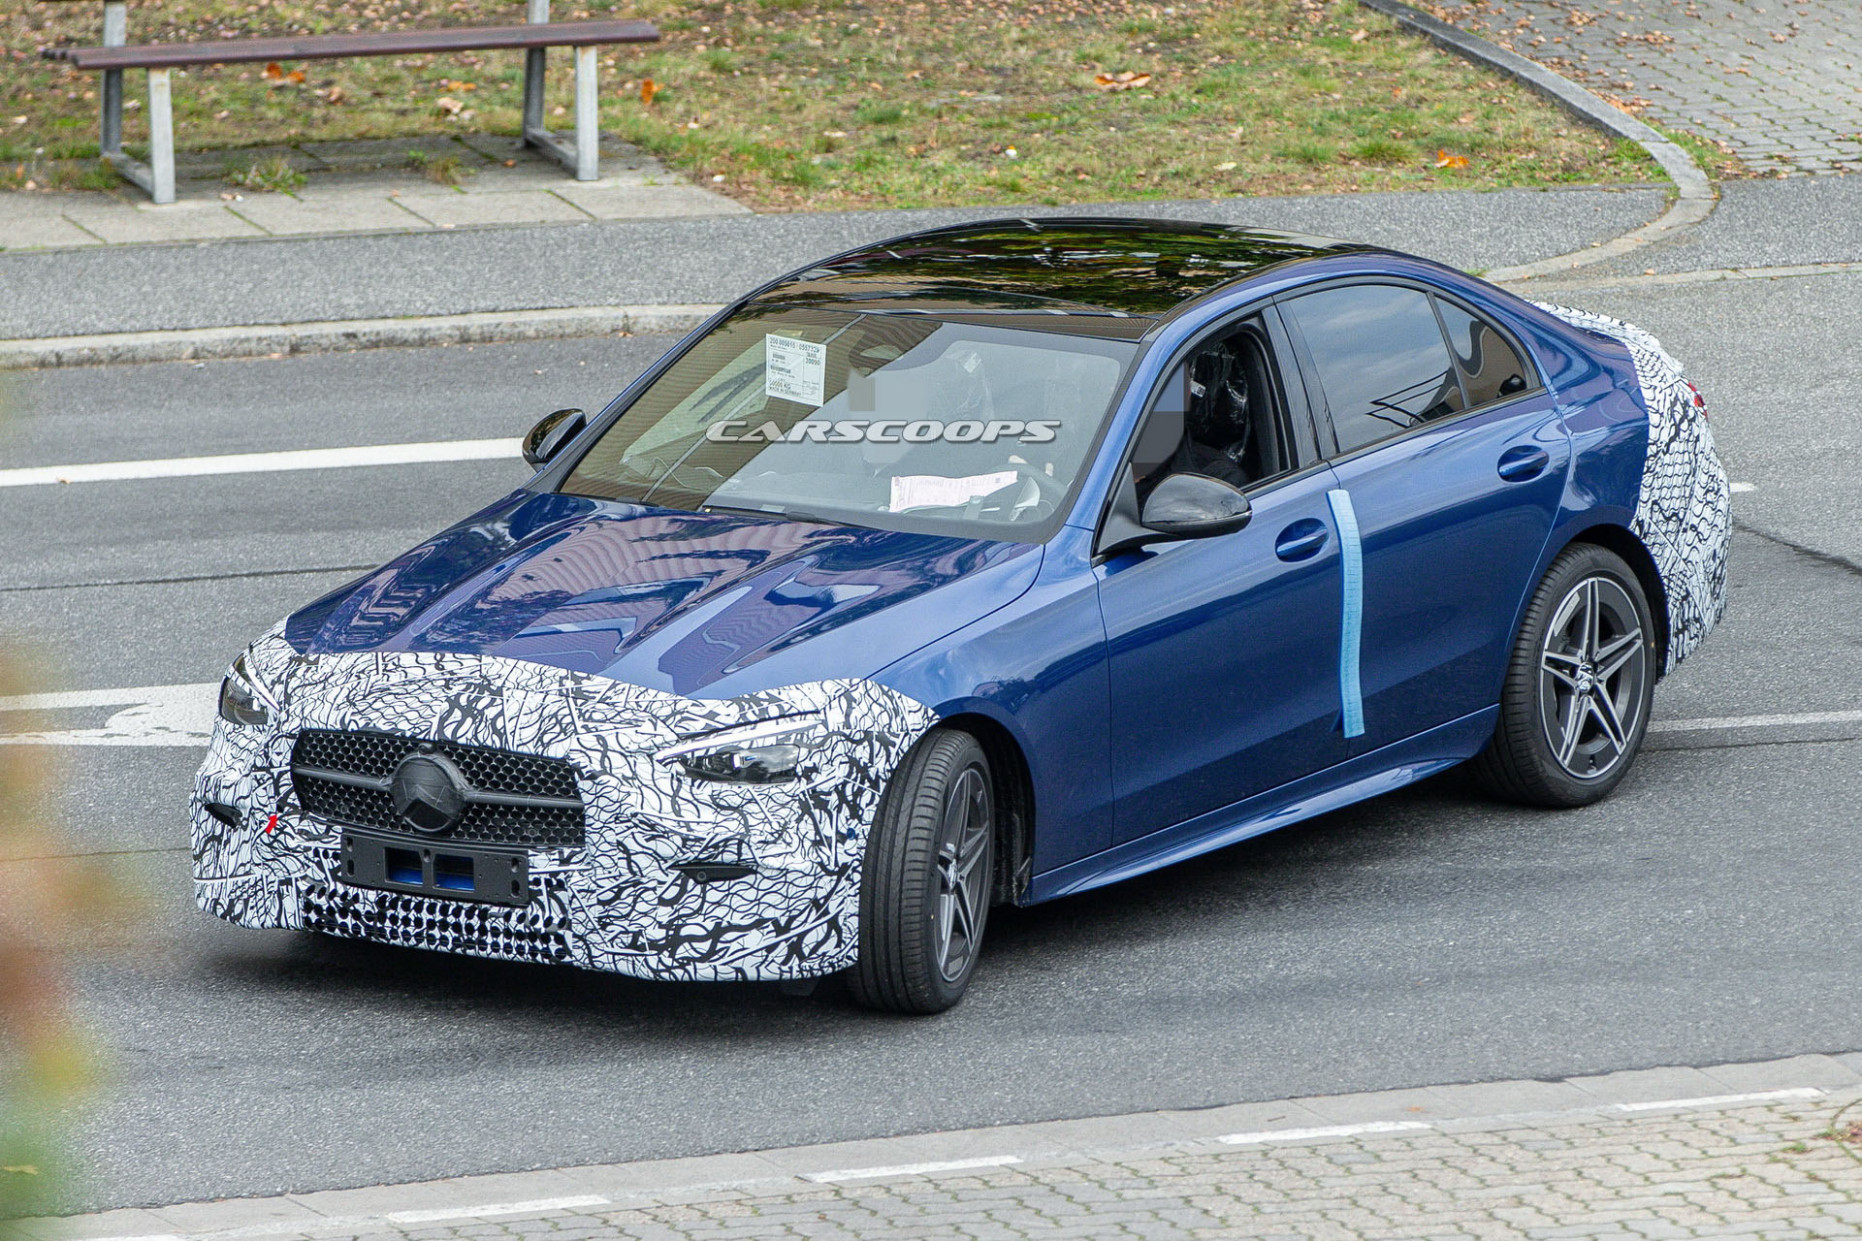 Redesign and Concept 2022 Mercedes C-class